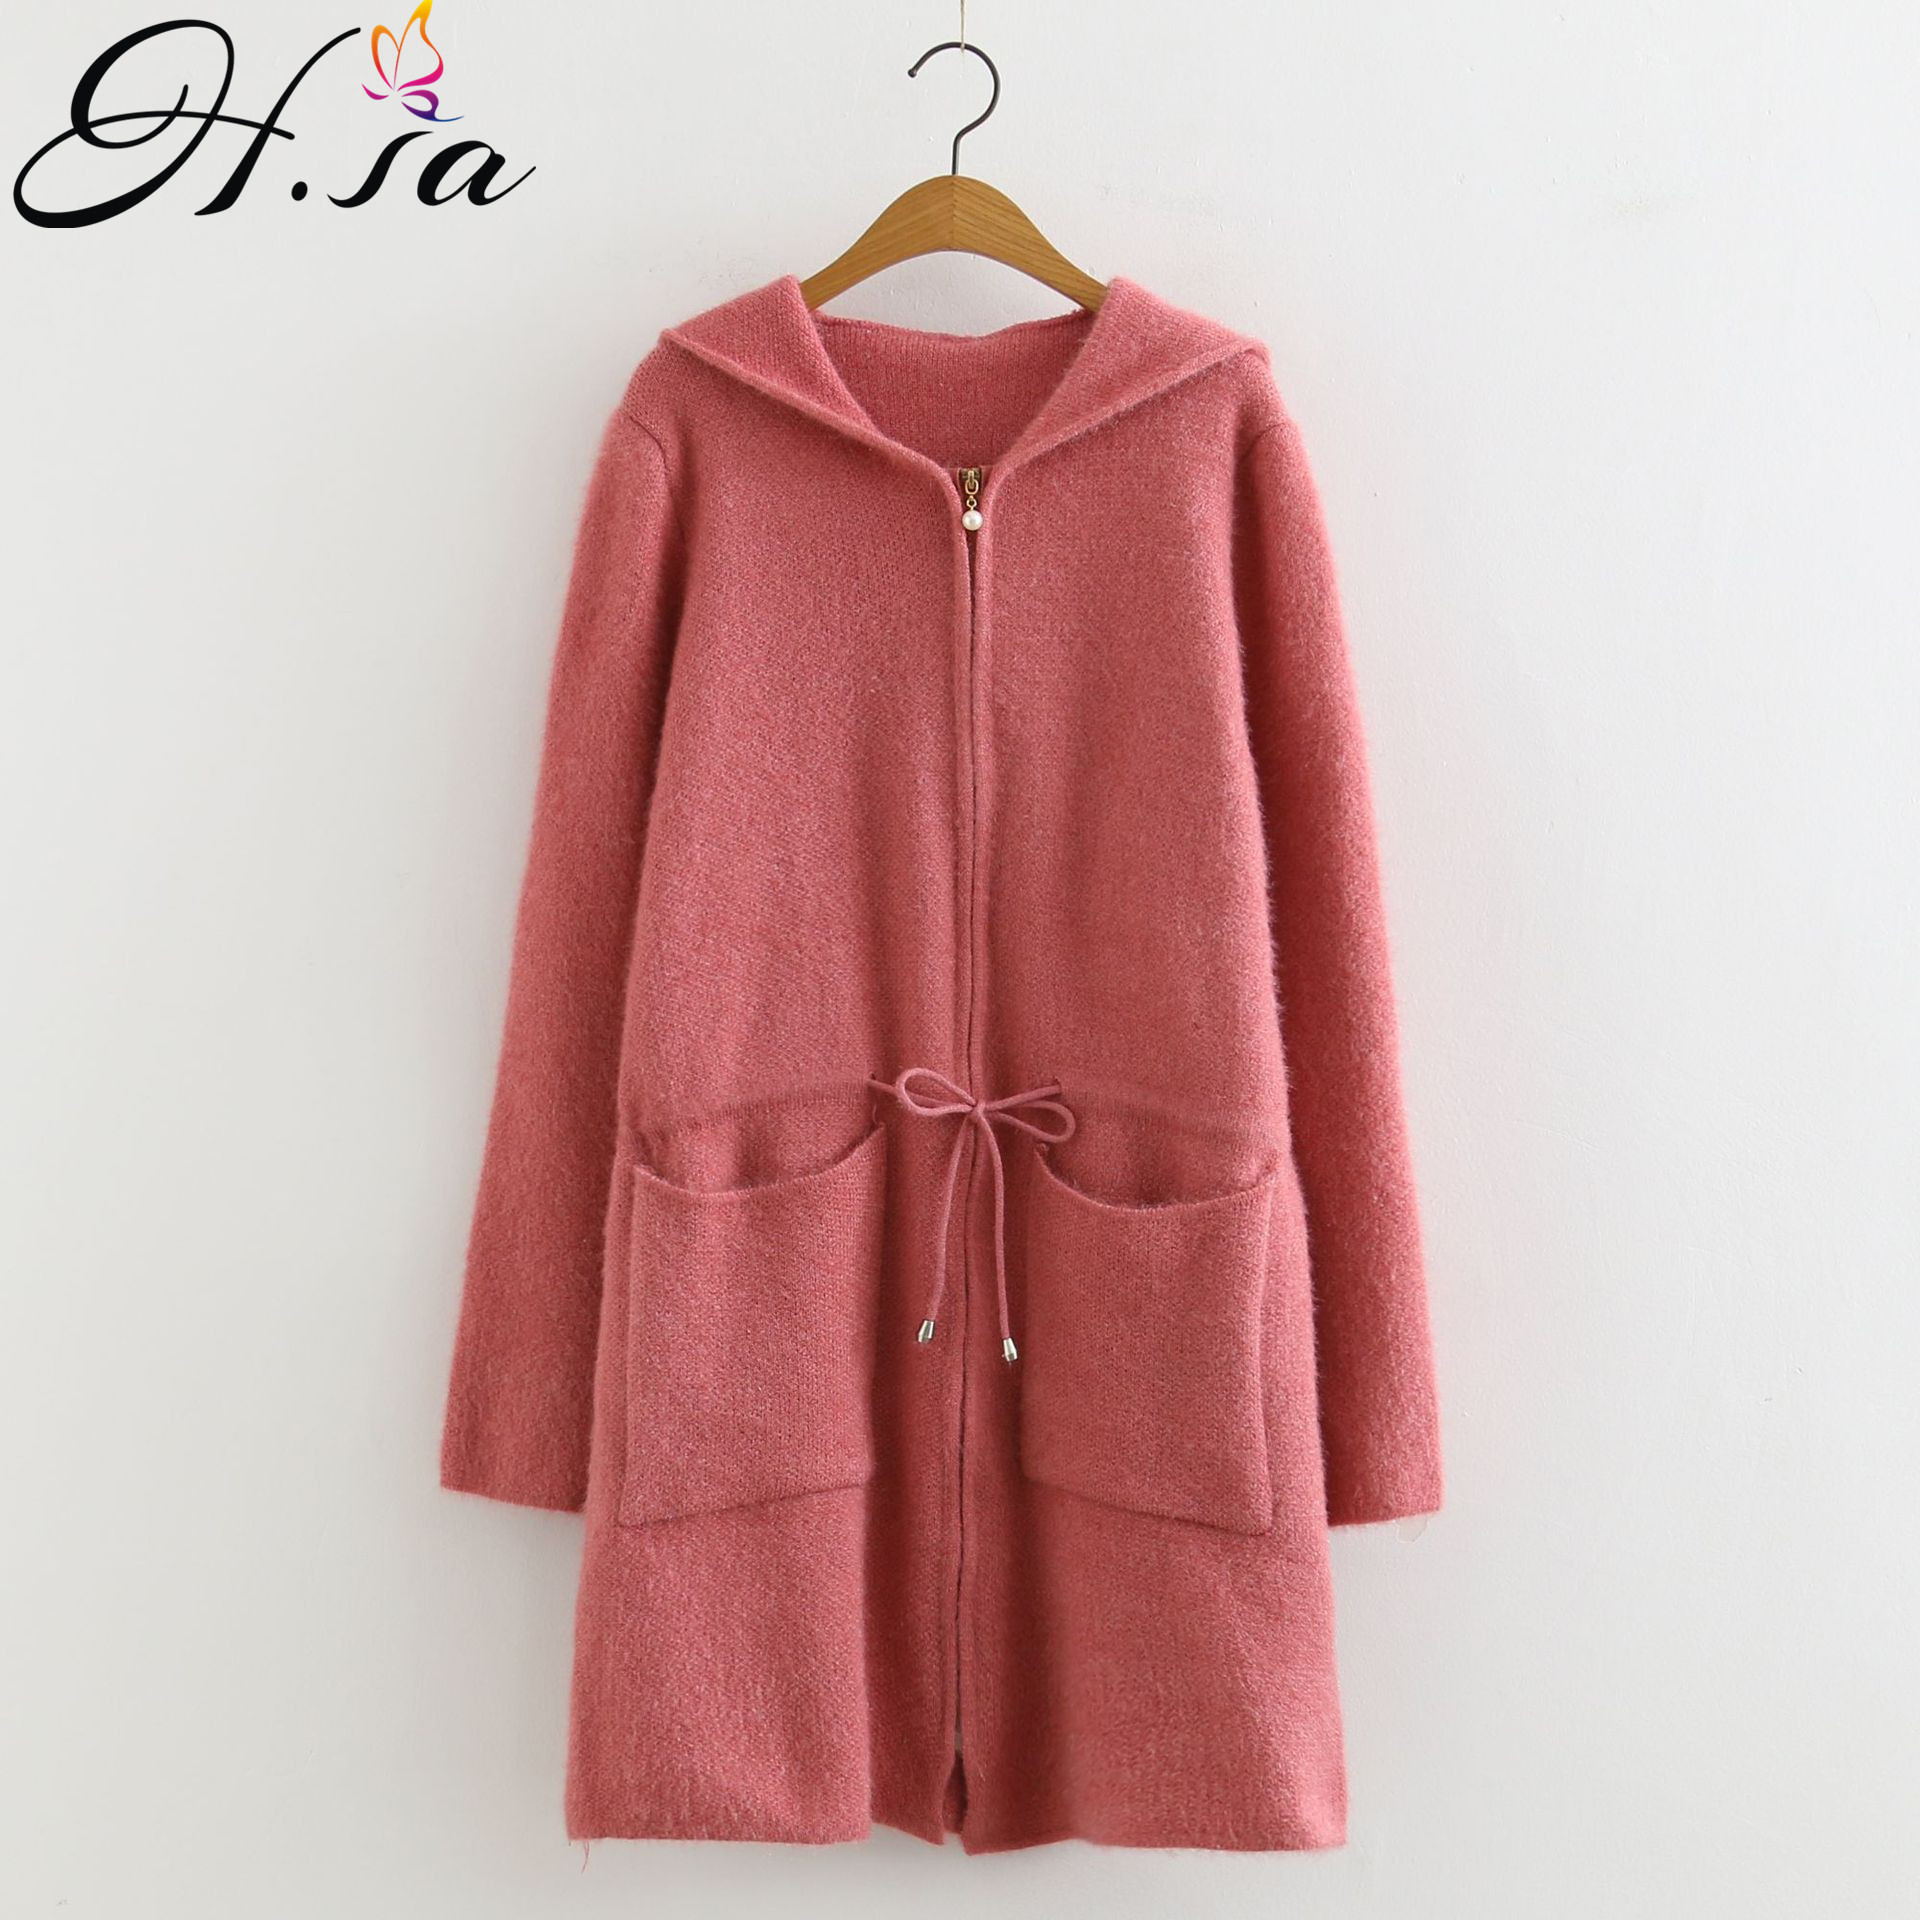 H.SA 2019 Long Hooded Knit Jacket And Coats Long Sleeve Sashes Zipper Ponchoes Sweater Cardigans Christmas Warm Coats  Outwear